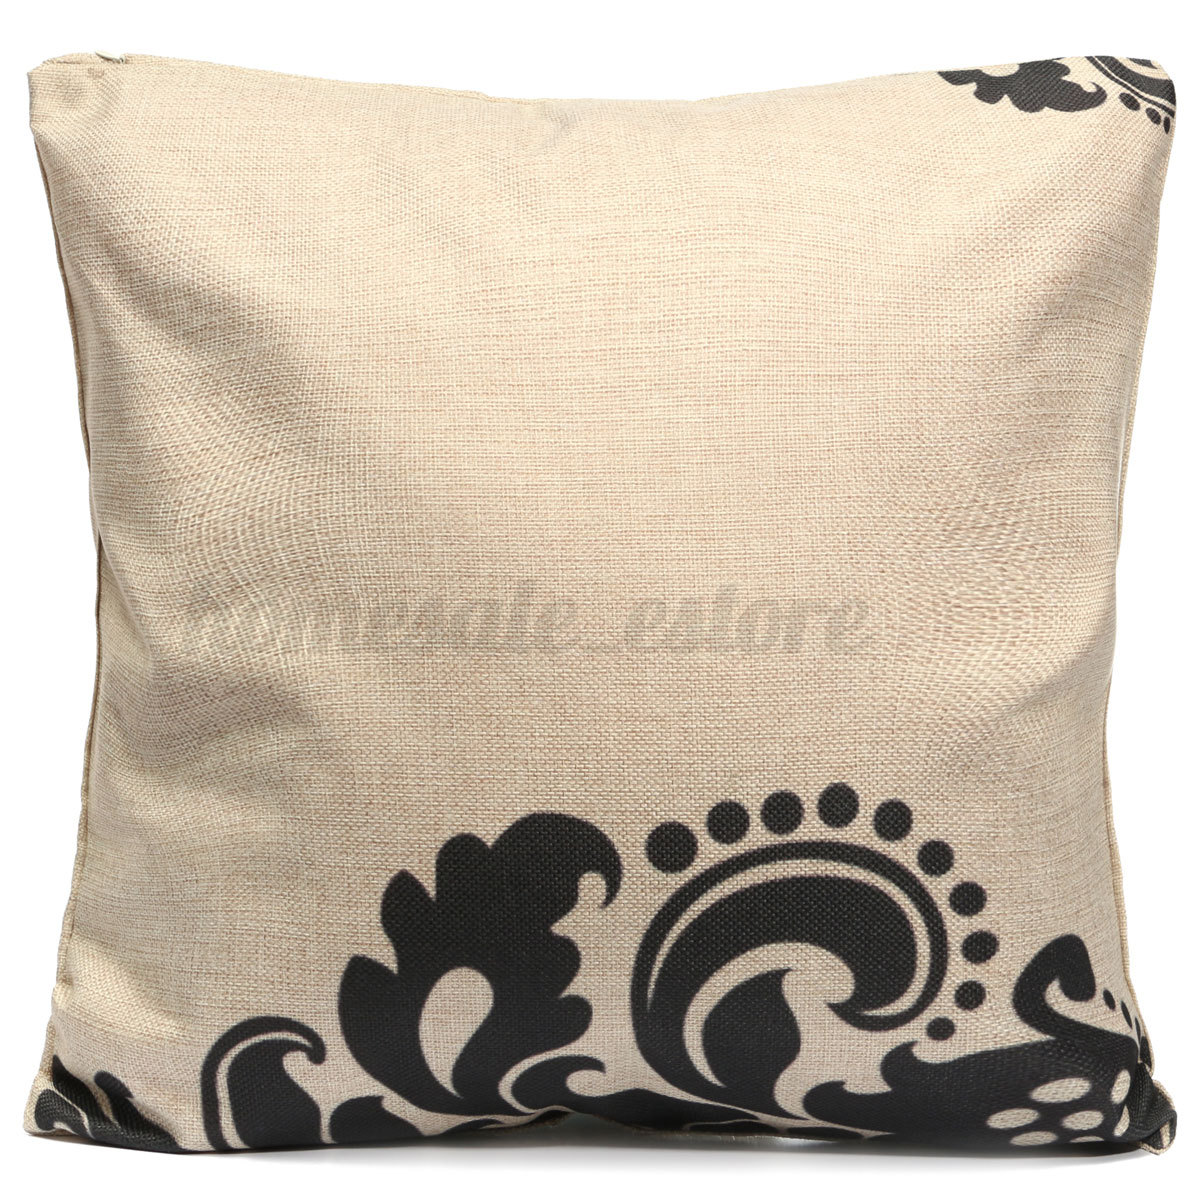 White Linen Throw Pillow : Vintage Black & White Cotton Linen Cushion Cover Throw Pillow Case Home Decor eBay